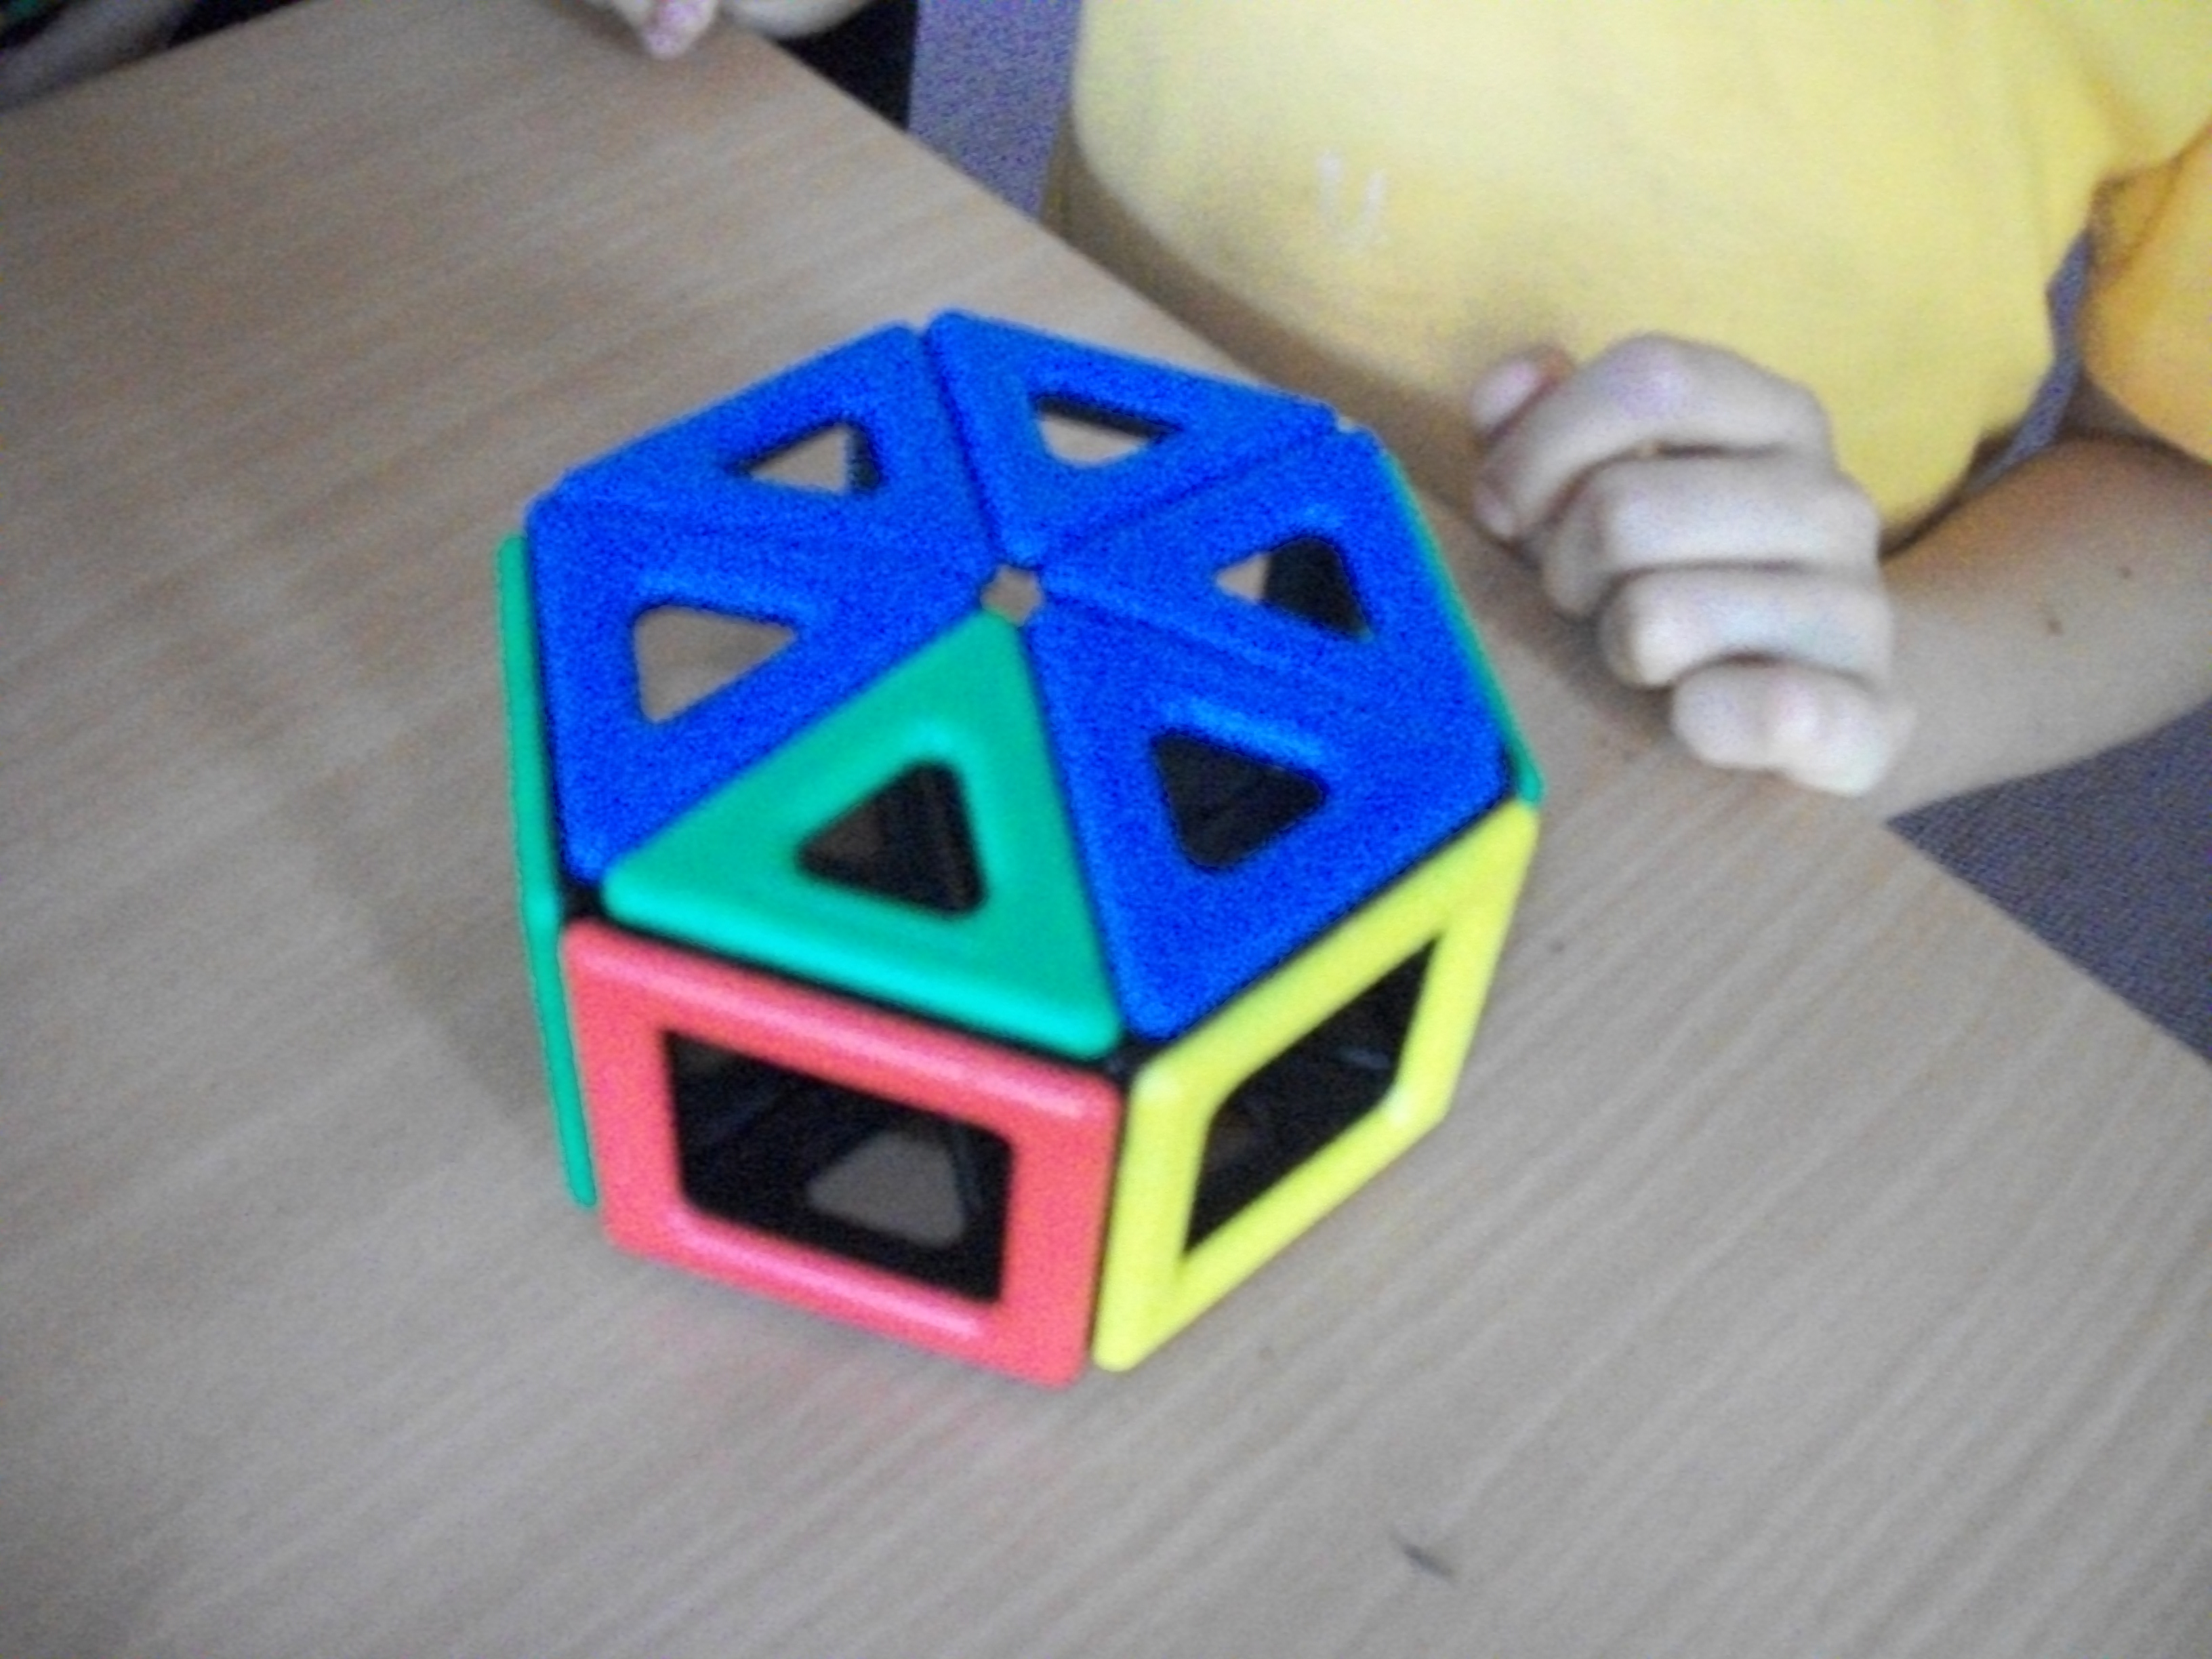 Heptagon Objects - ma